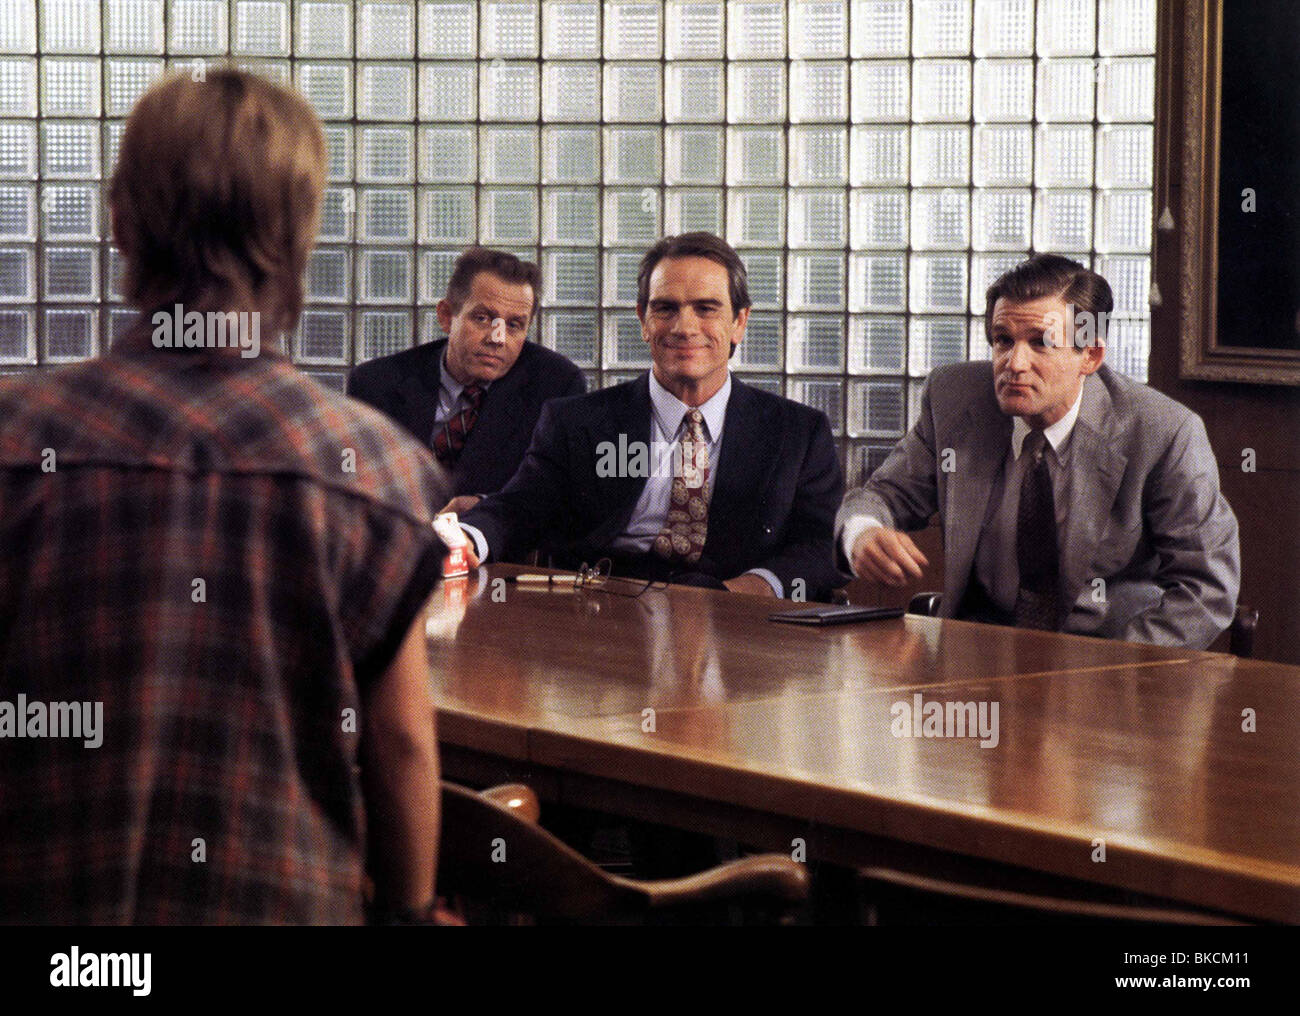 f98eed11bee26a Anthony Heald Stock Photos   Anthony Heald Stock Images - Alamy